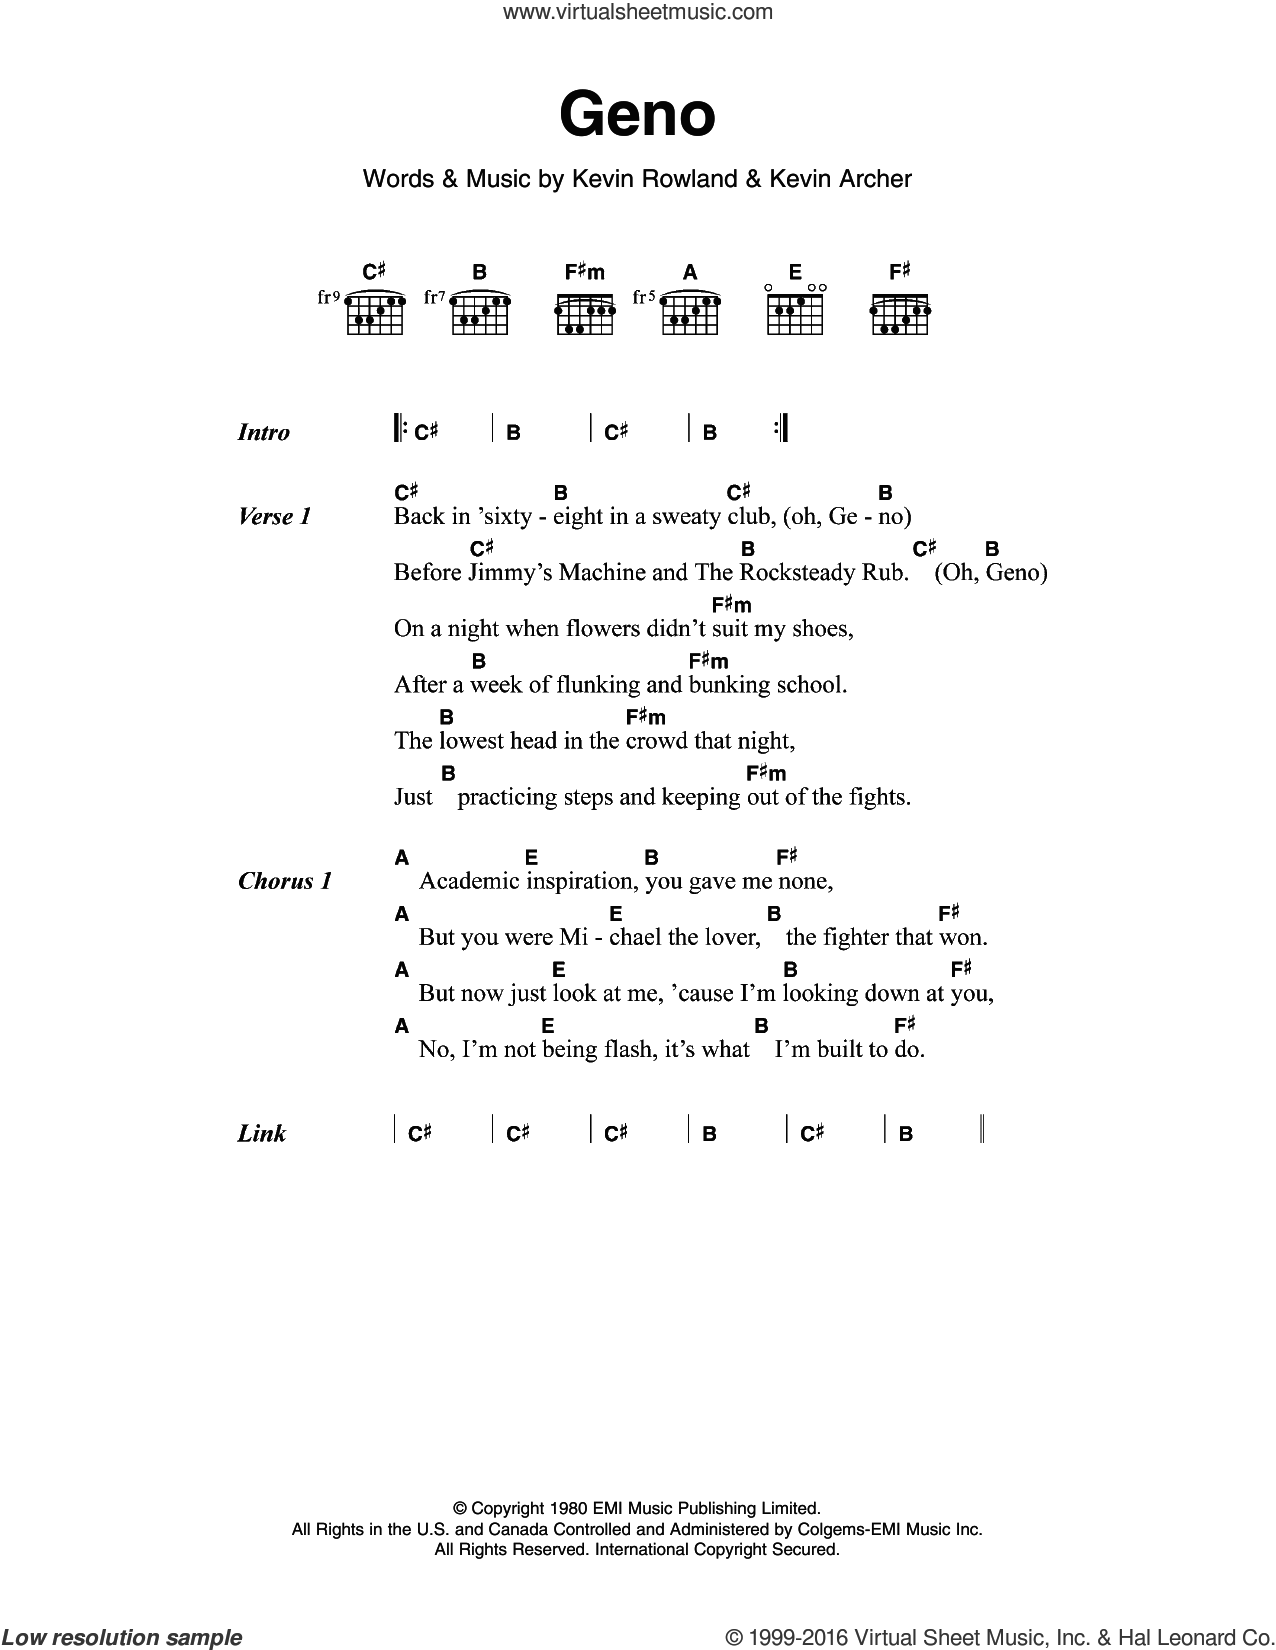 Geno sheet music for guitar (chords) by Dexy's Midnight Runners, Kevin Archer and Kevin Rowland, intermediate skill level